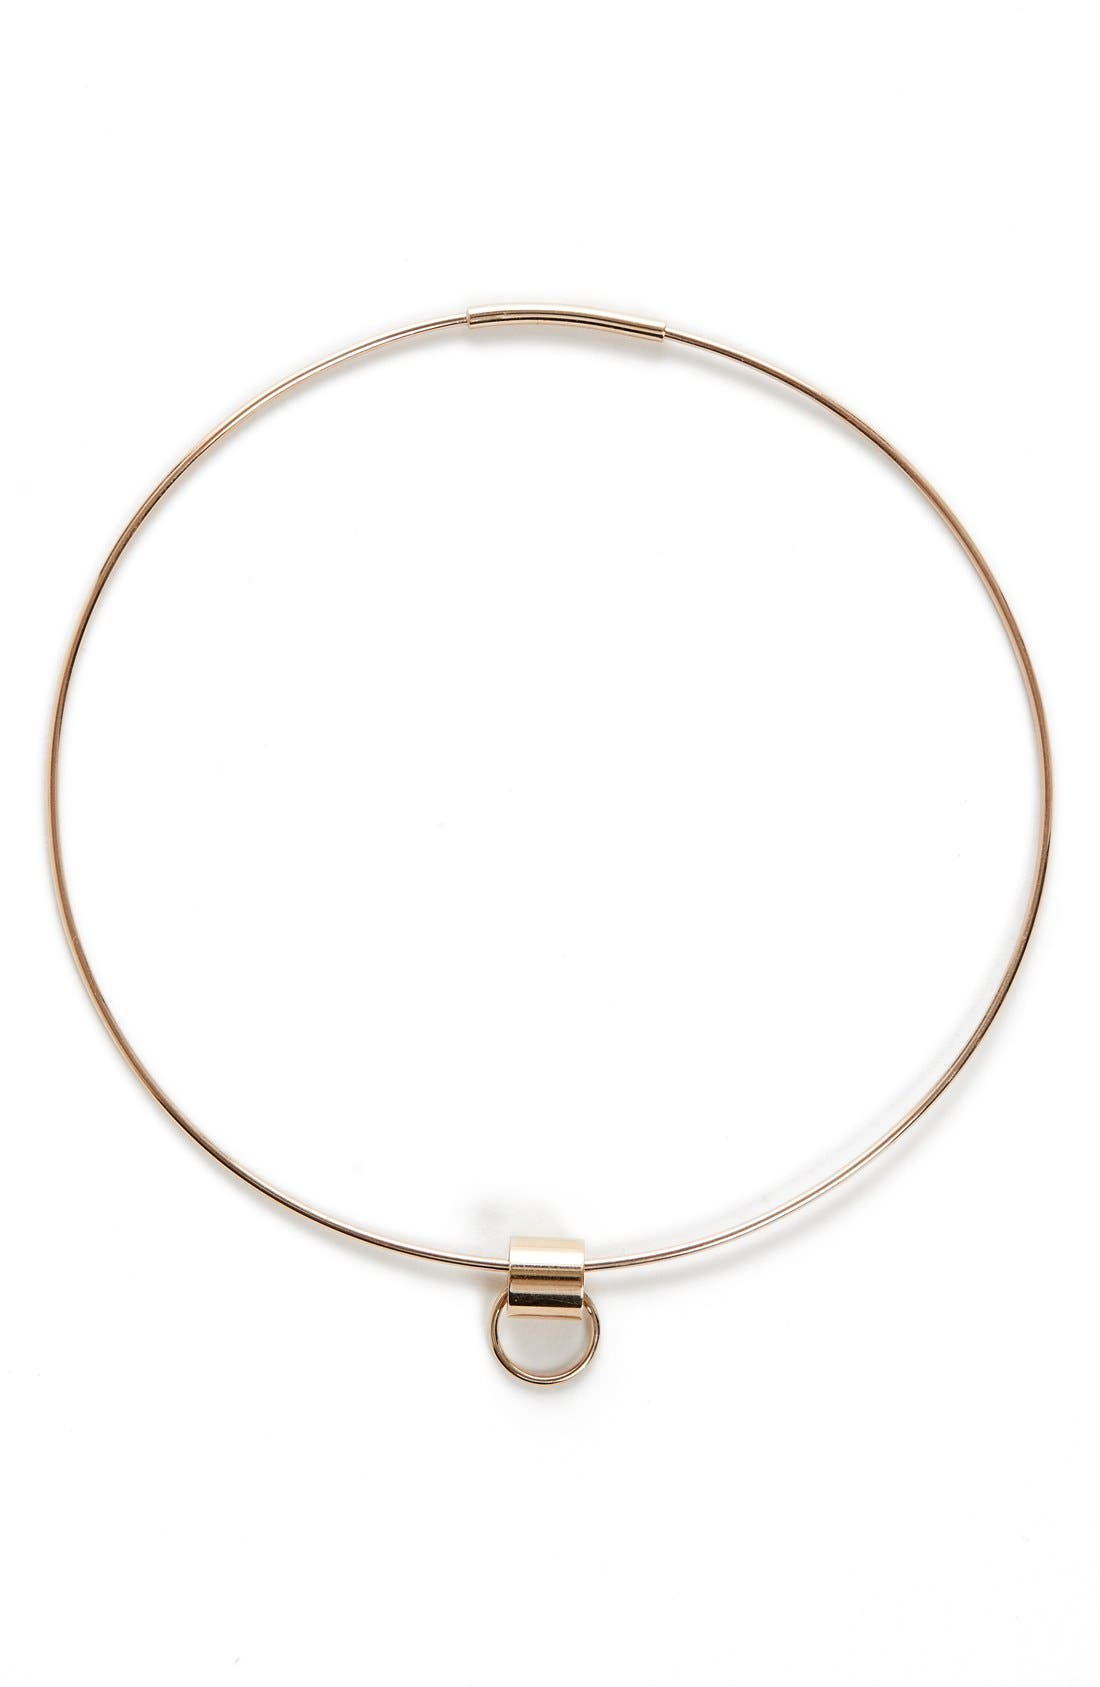 SARAH & SEBASTIAN Young Neckwire Collar Necklace